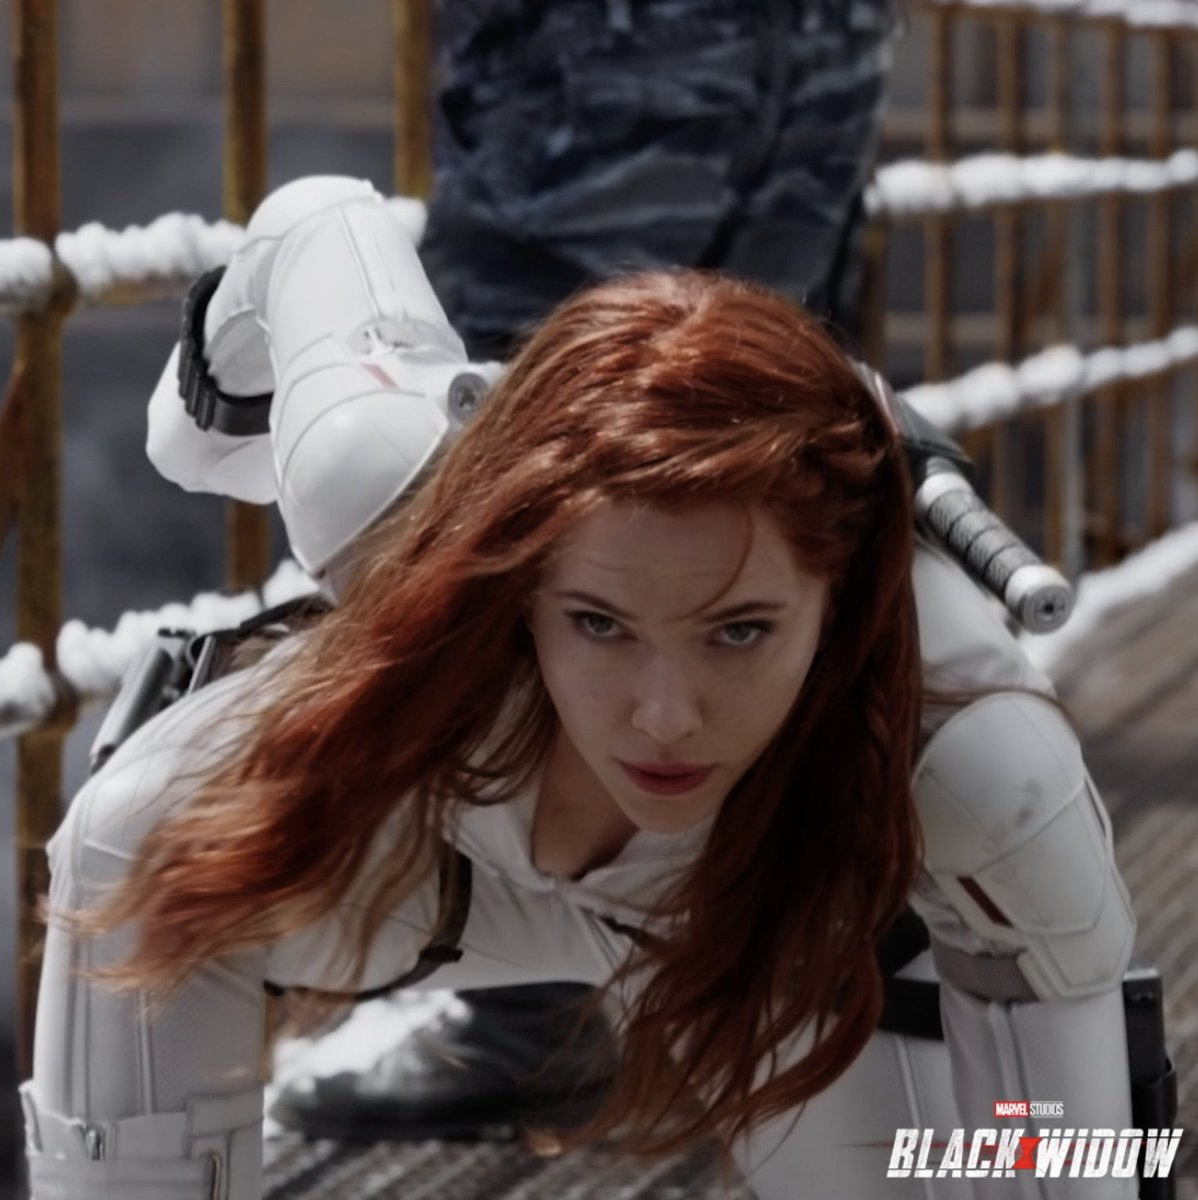 Marvel Studios' #BlackWidow arrives July 9. 🙌 Tickets and pre-orders available now. https://t.co/cWeQKLS0qL https://t.co/E4Pv2WCwKO